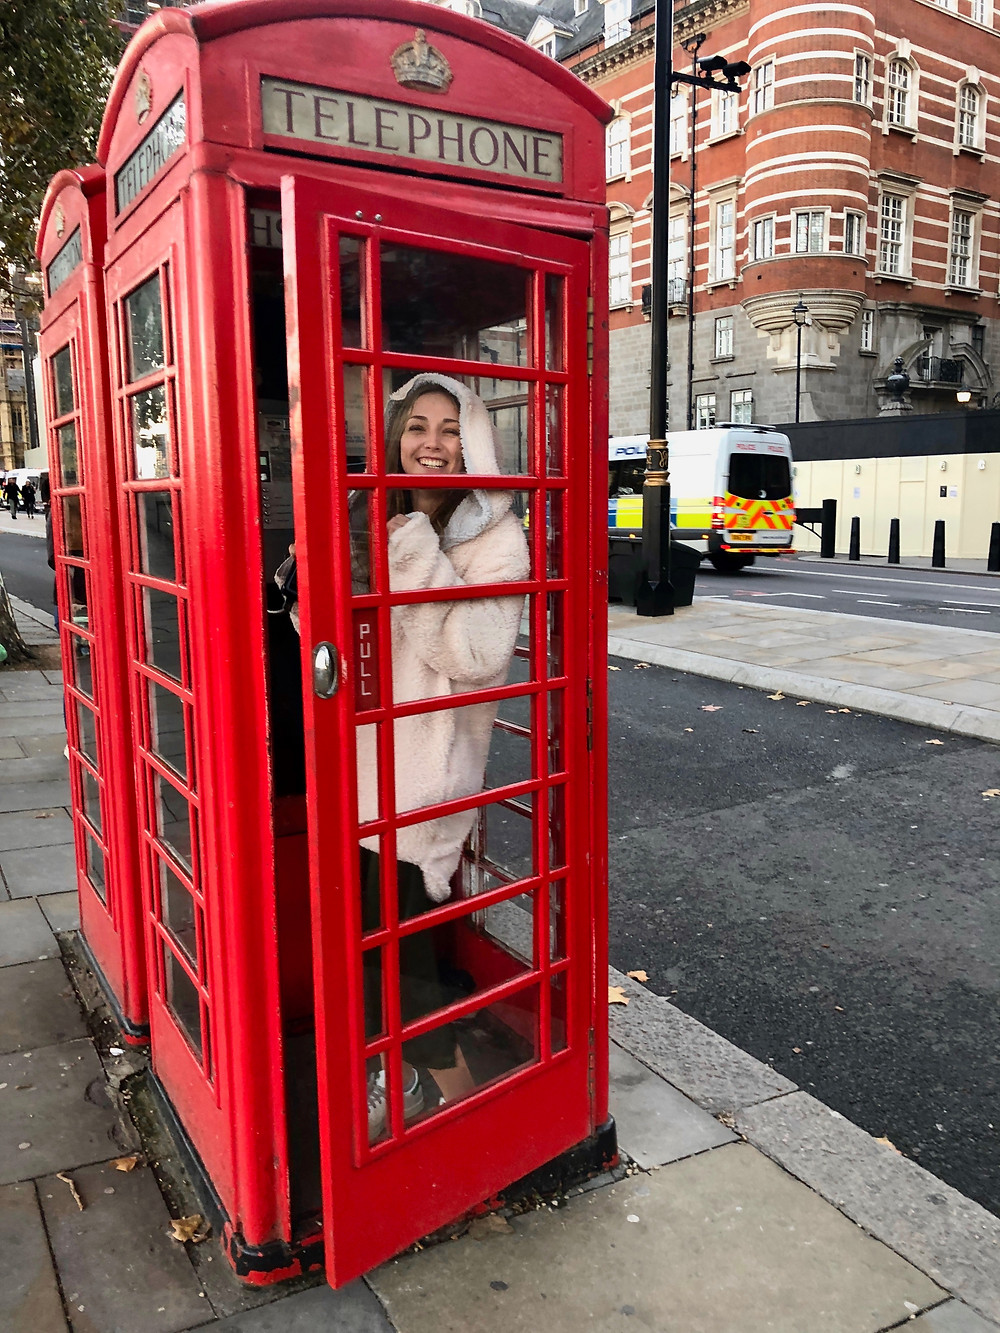 my daughter, enjoying the photo ops in a classic red London phone booth